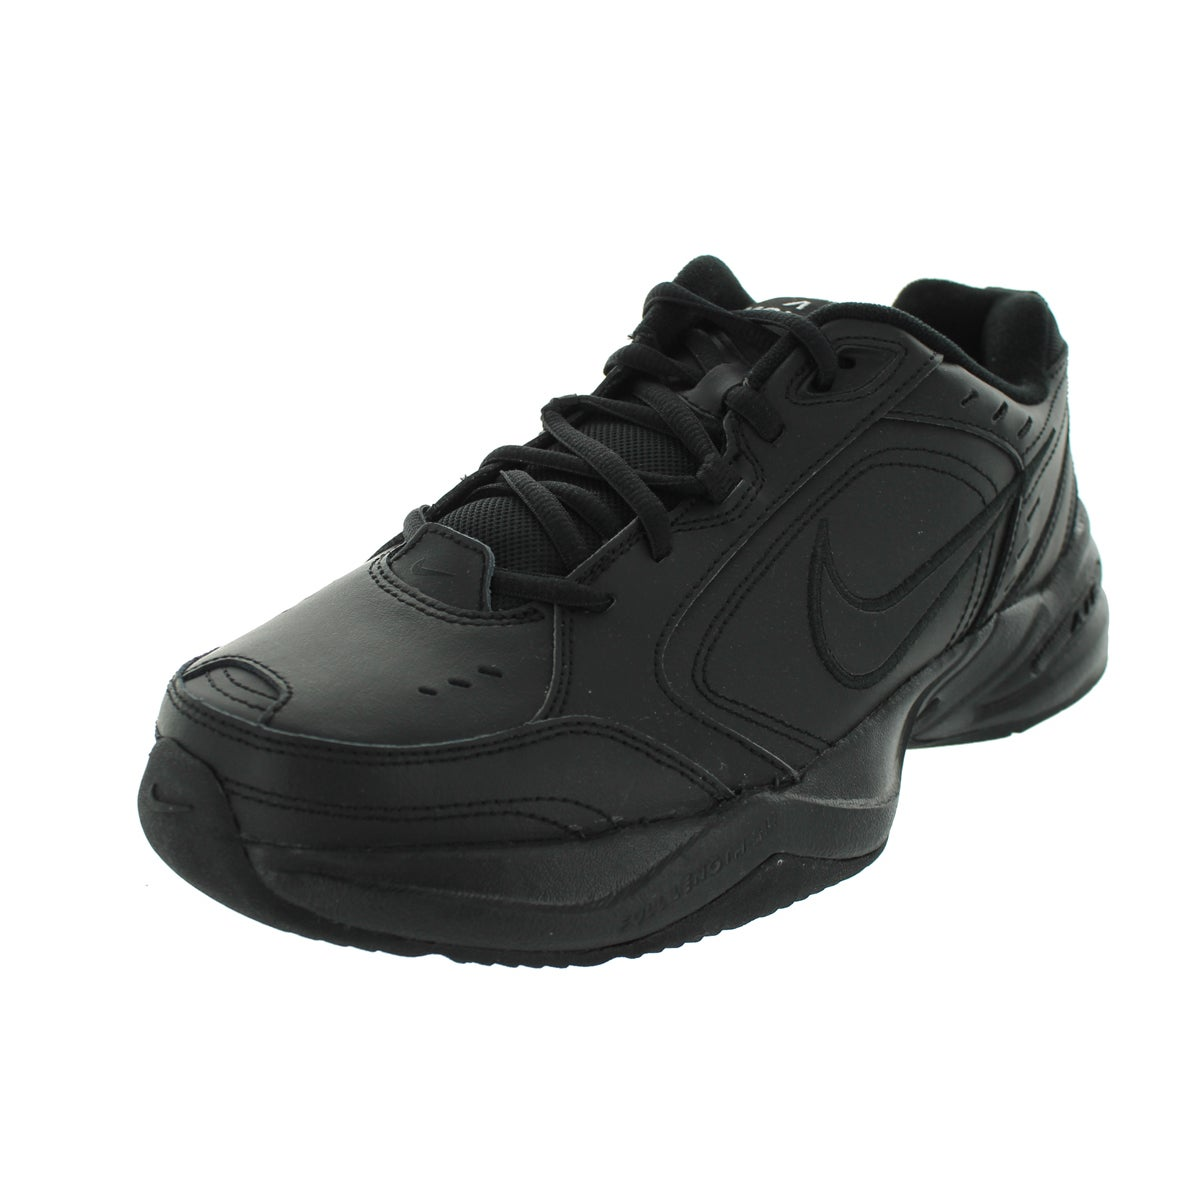 4bd7dead9c4238 Shop Nike Air Monarch IV Black Synthetic-leather Training Shoes ...